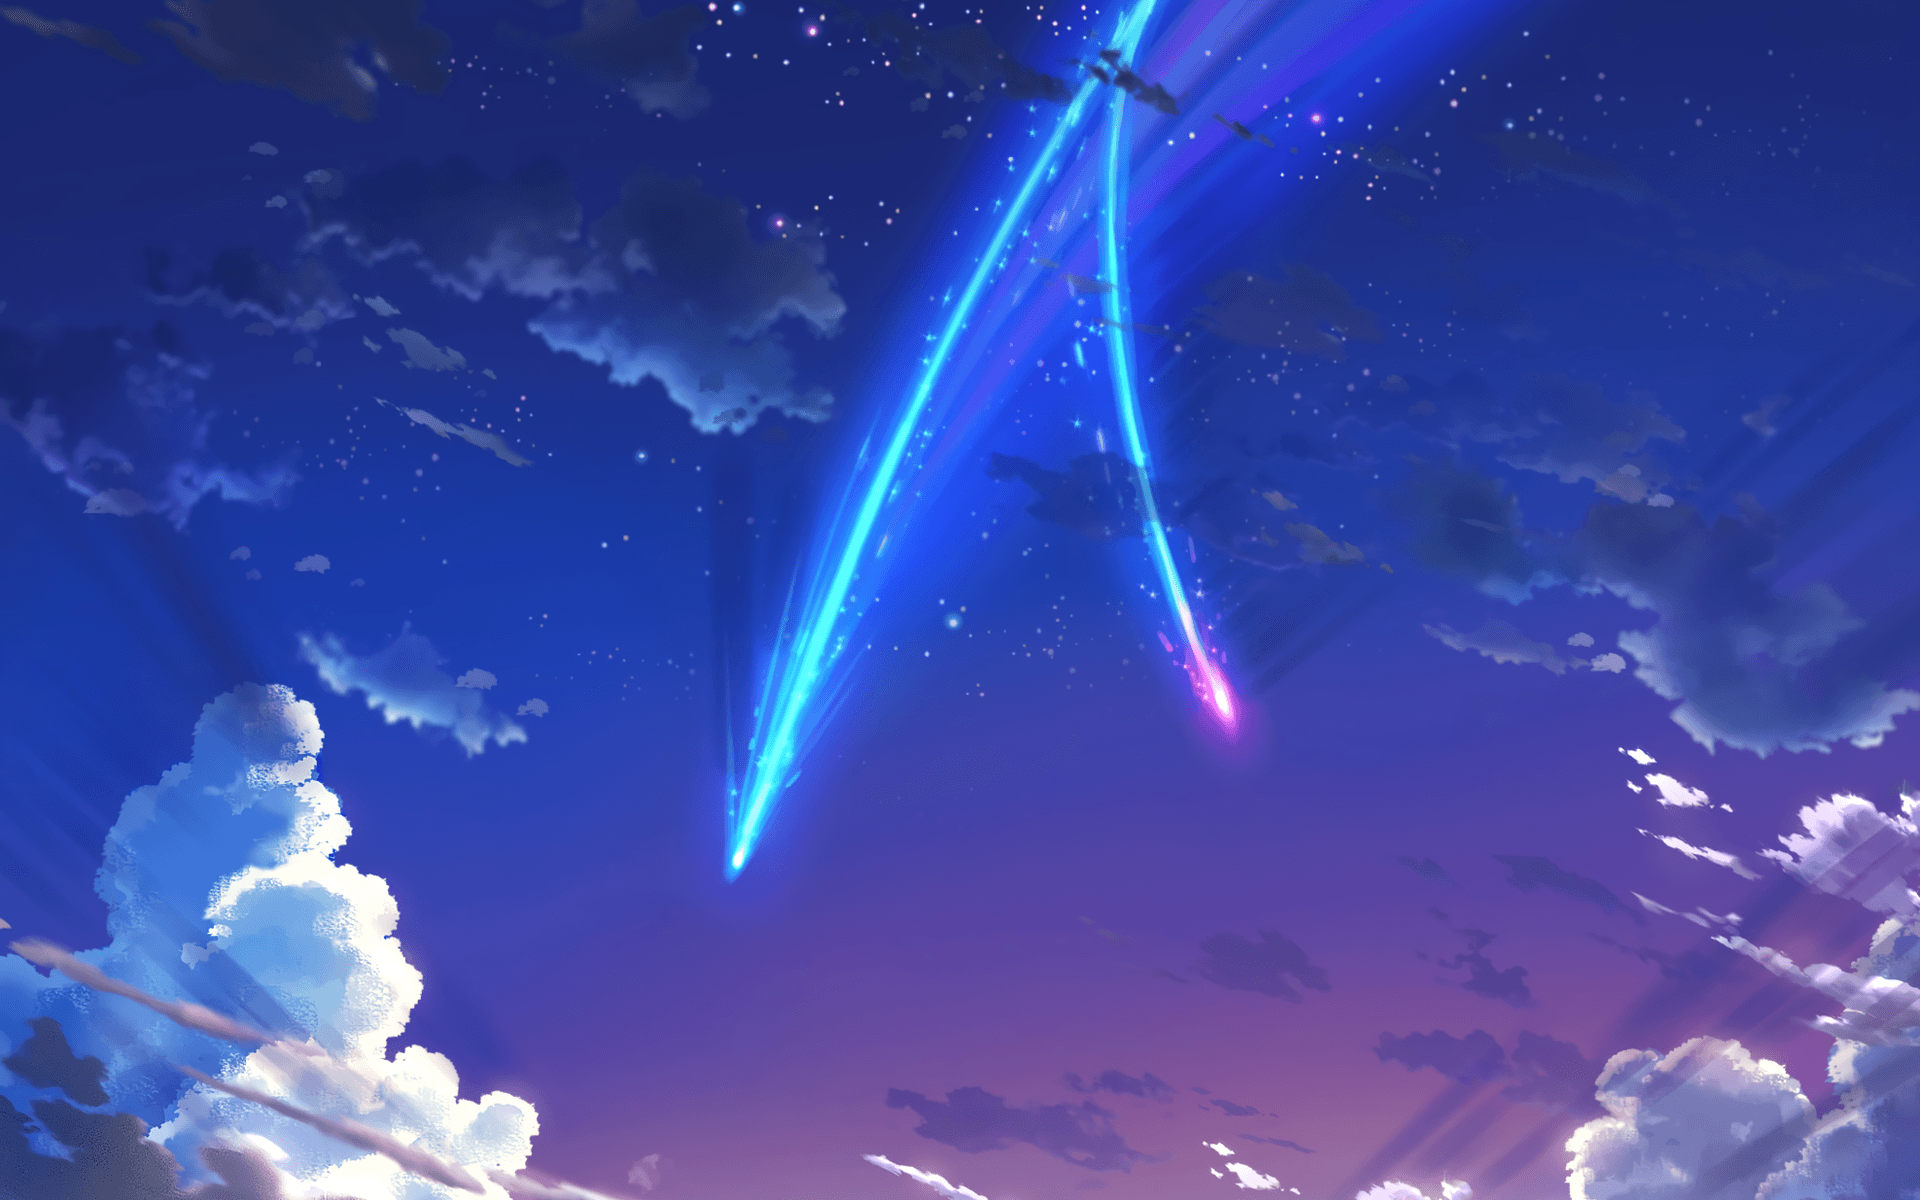 Kimi No Na Wa Hd Wallpaper 1920x1080 Your Name Anime Landscape Wallpapers Top Free Your Name Downl In 2020 Name Wallpaper Your Name Wallpaper Kimi No Na Wa Wallpaper